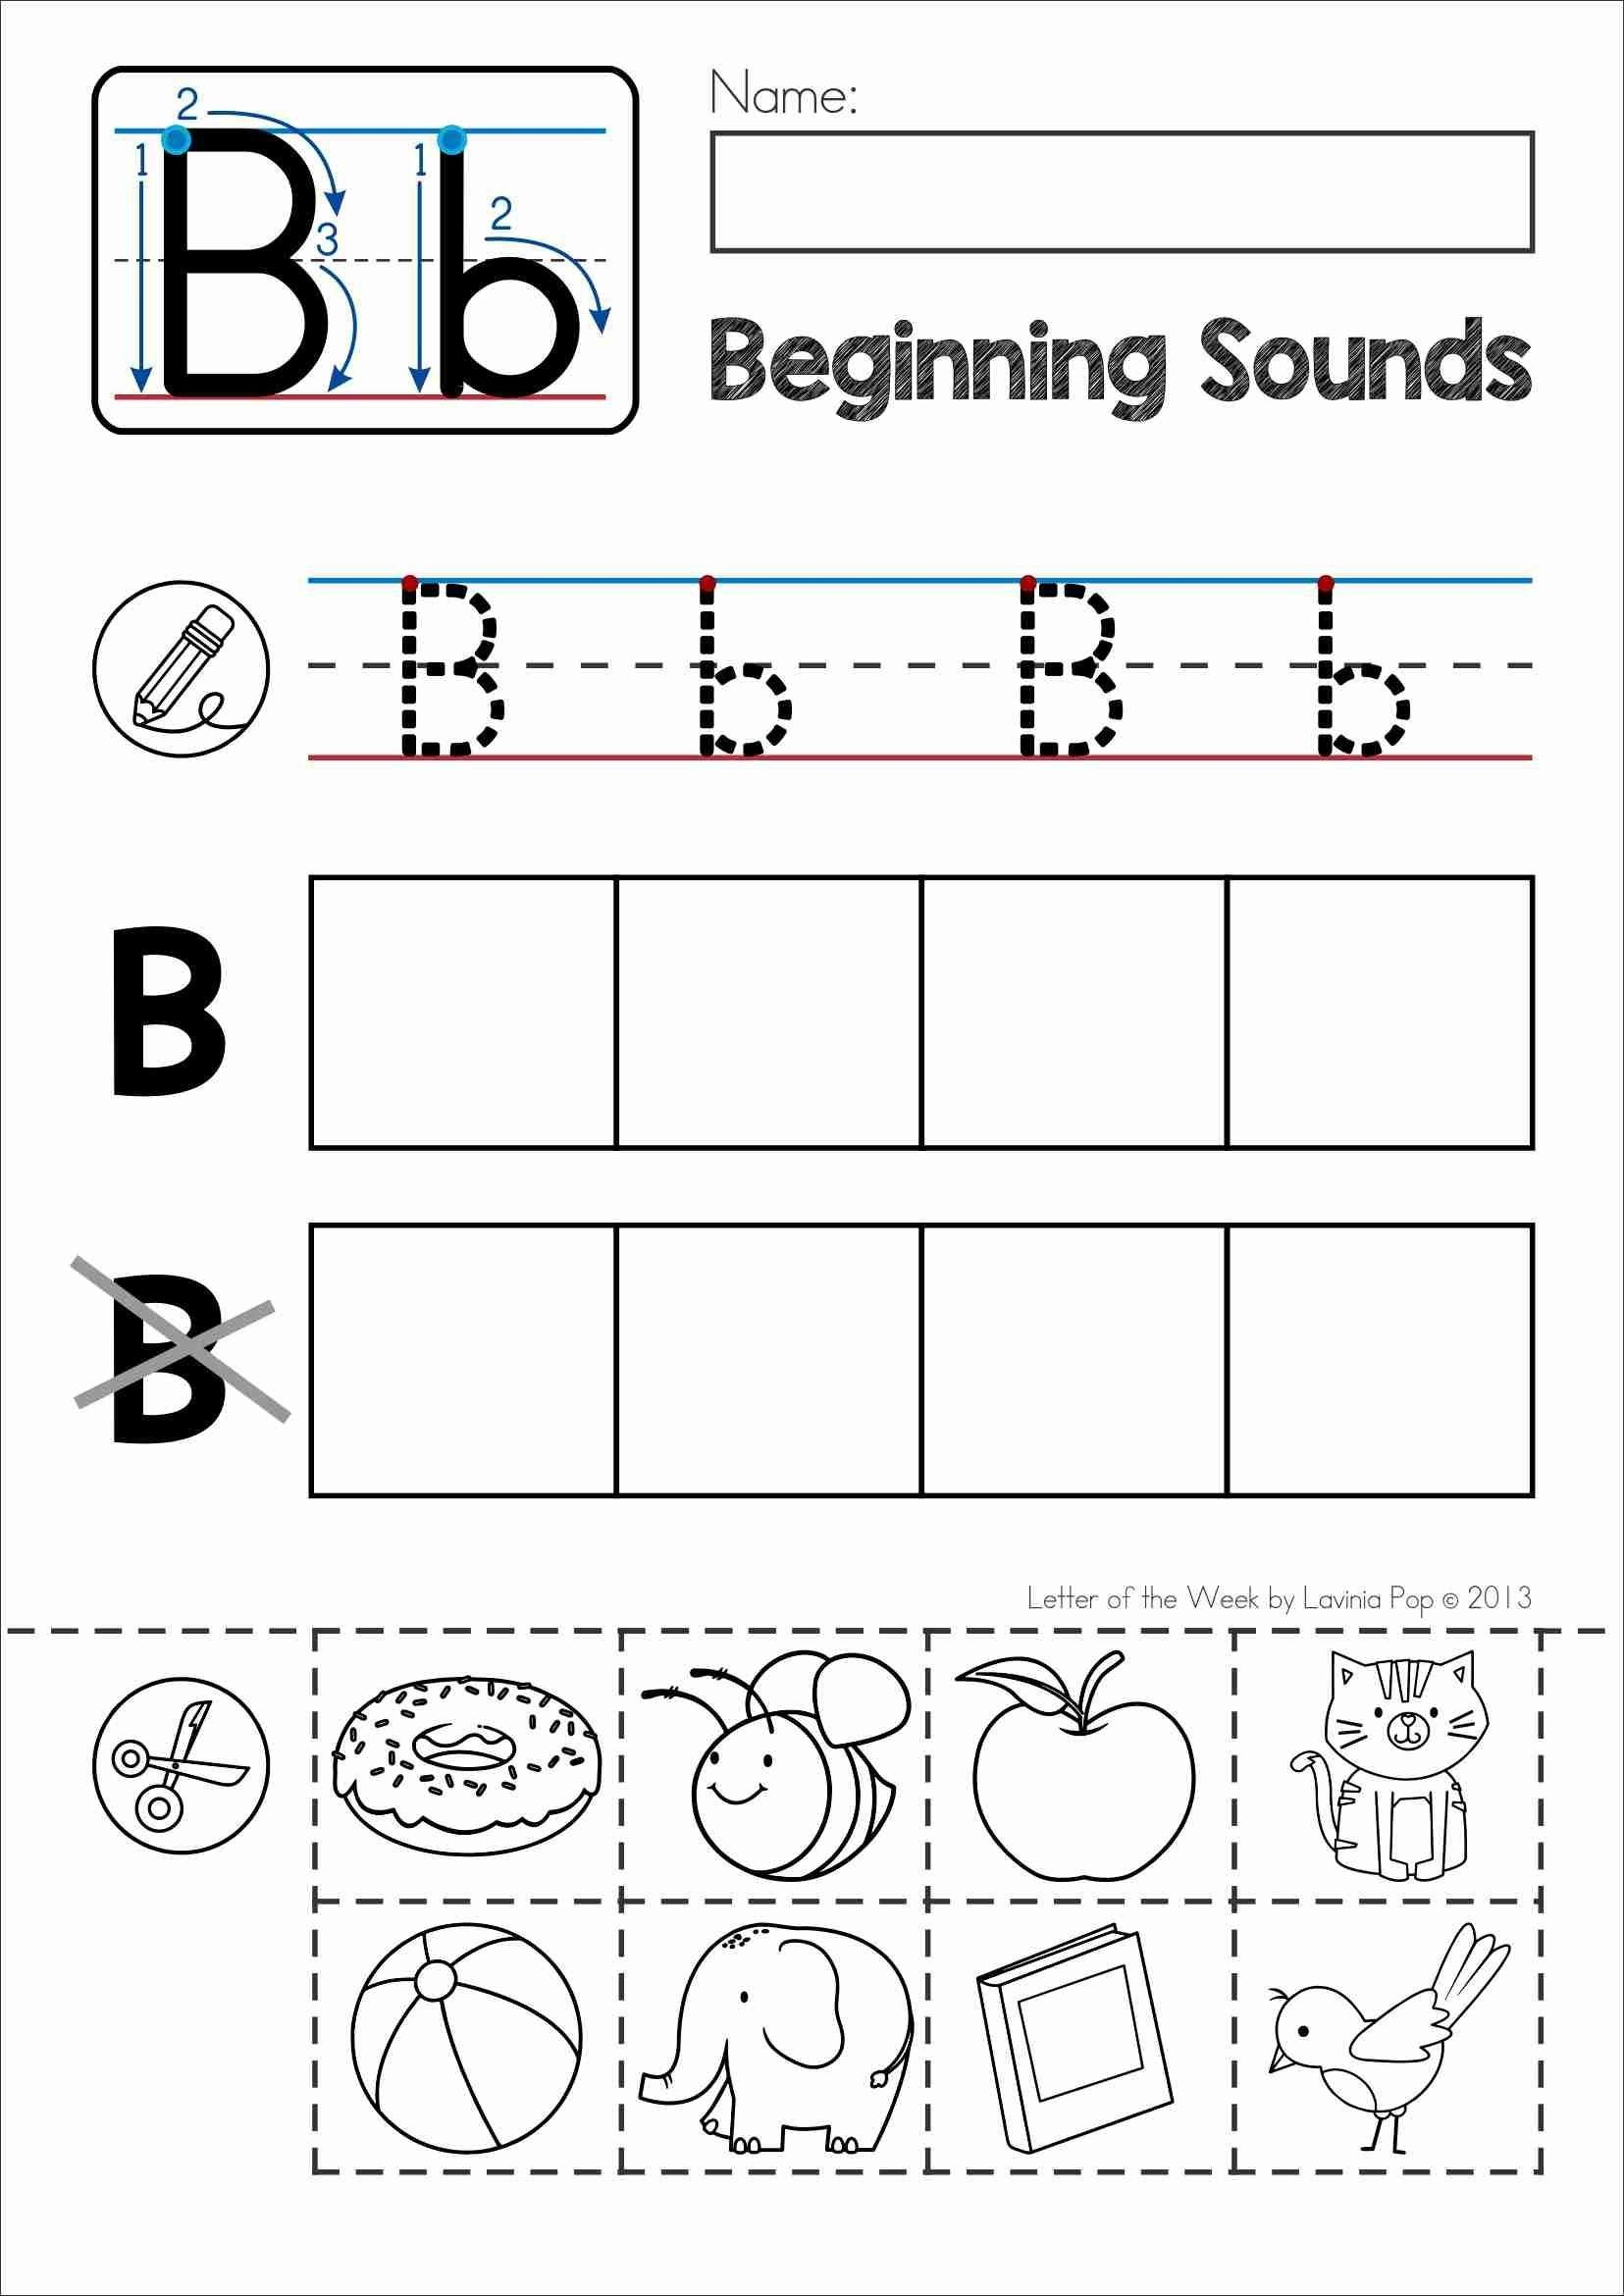 Preschool Letter Recognition Worksheets 6 Letter Worksheets